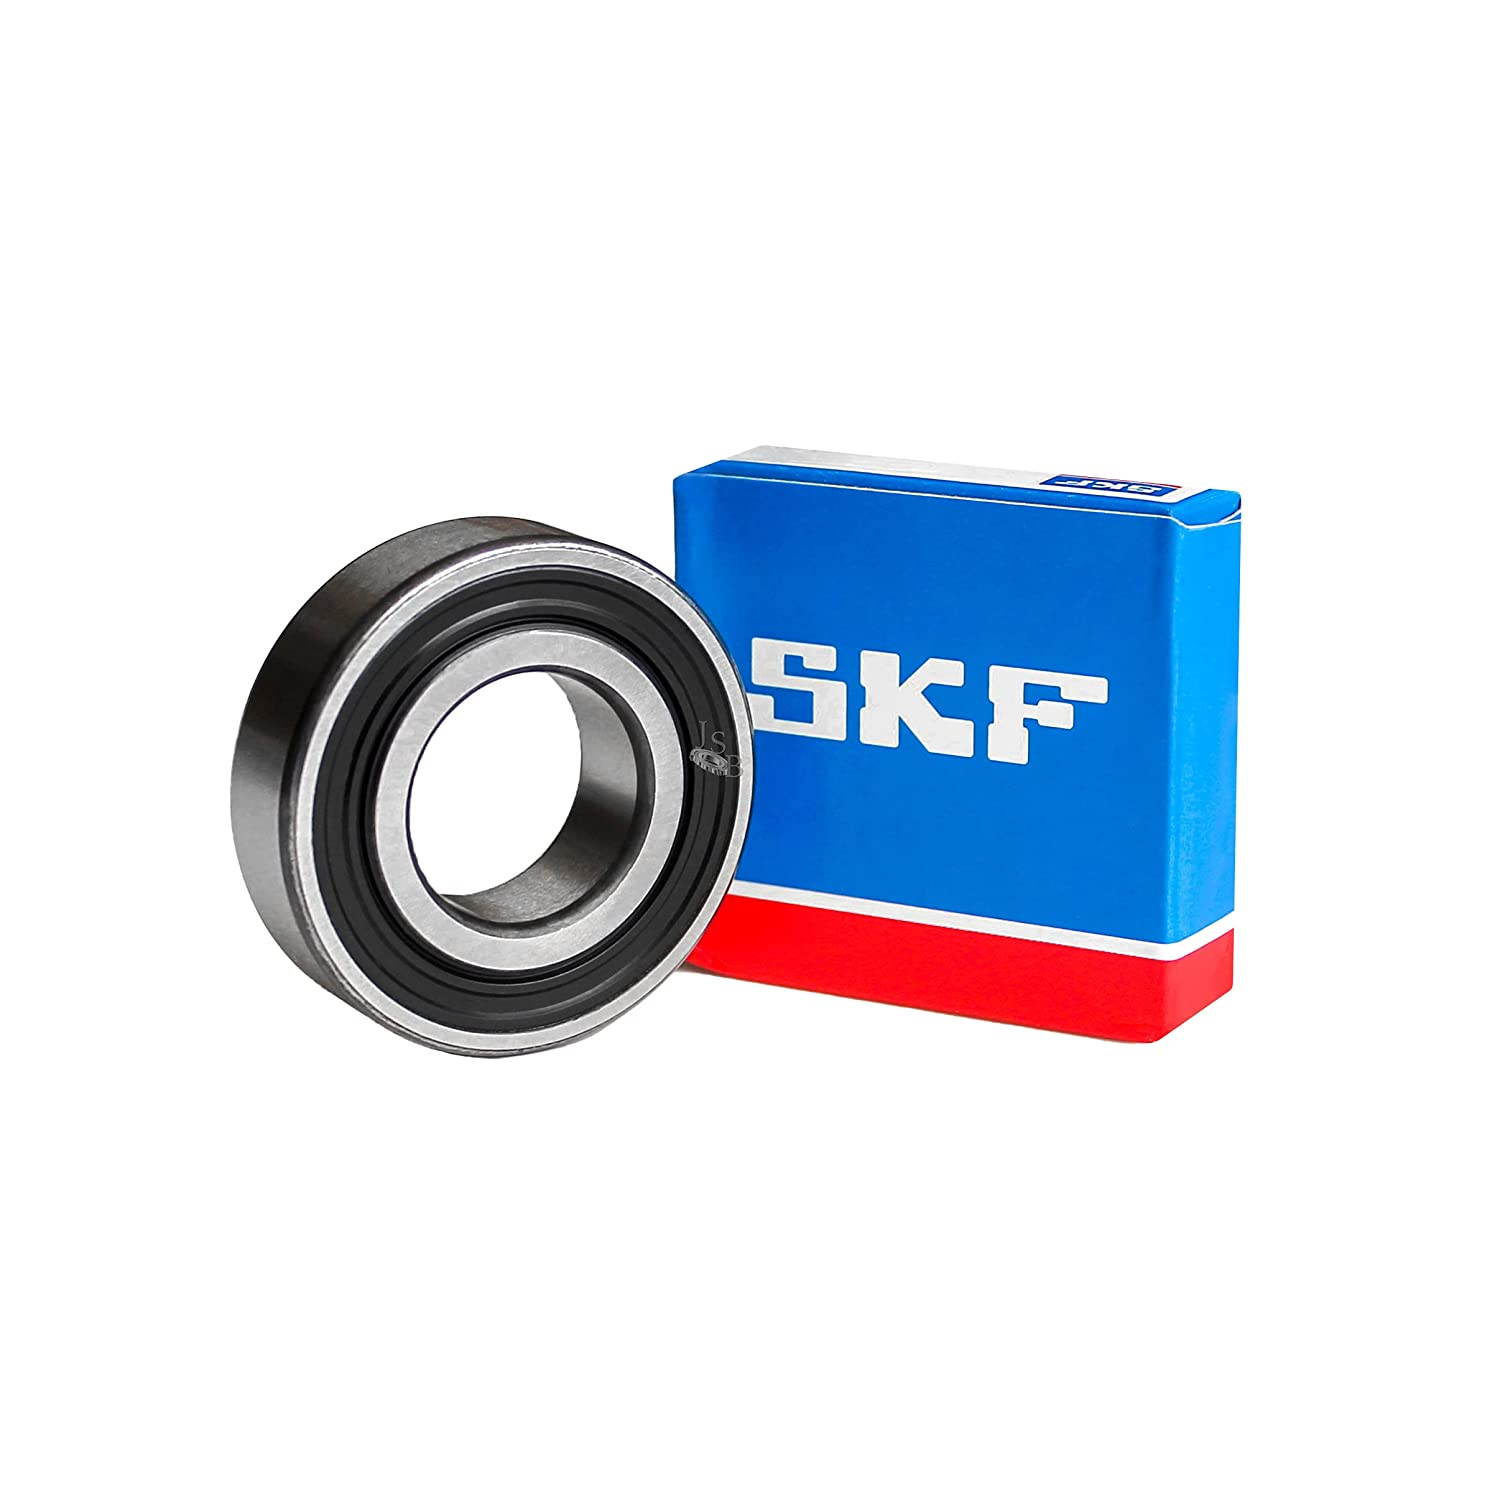 6305-2RS C3 SKF Brand Finally resale start Rubber Seal Bearing 25x62x17 2RS Ball Sales results No. 1 6305